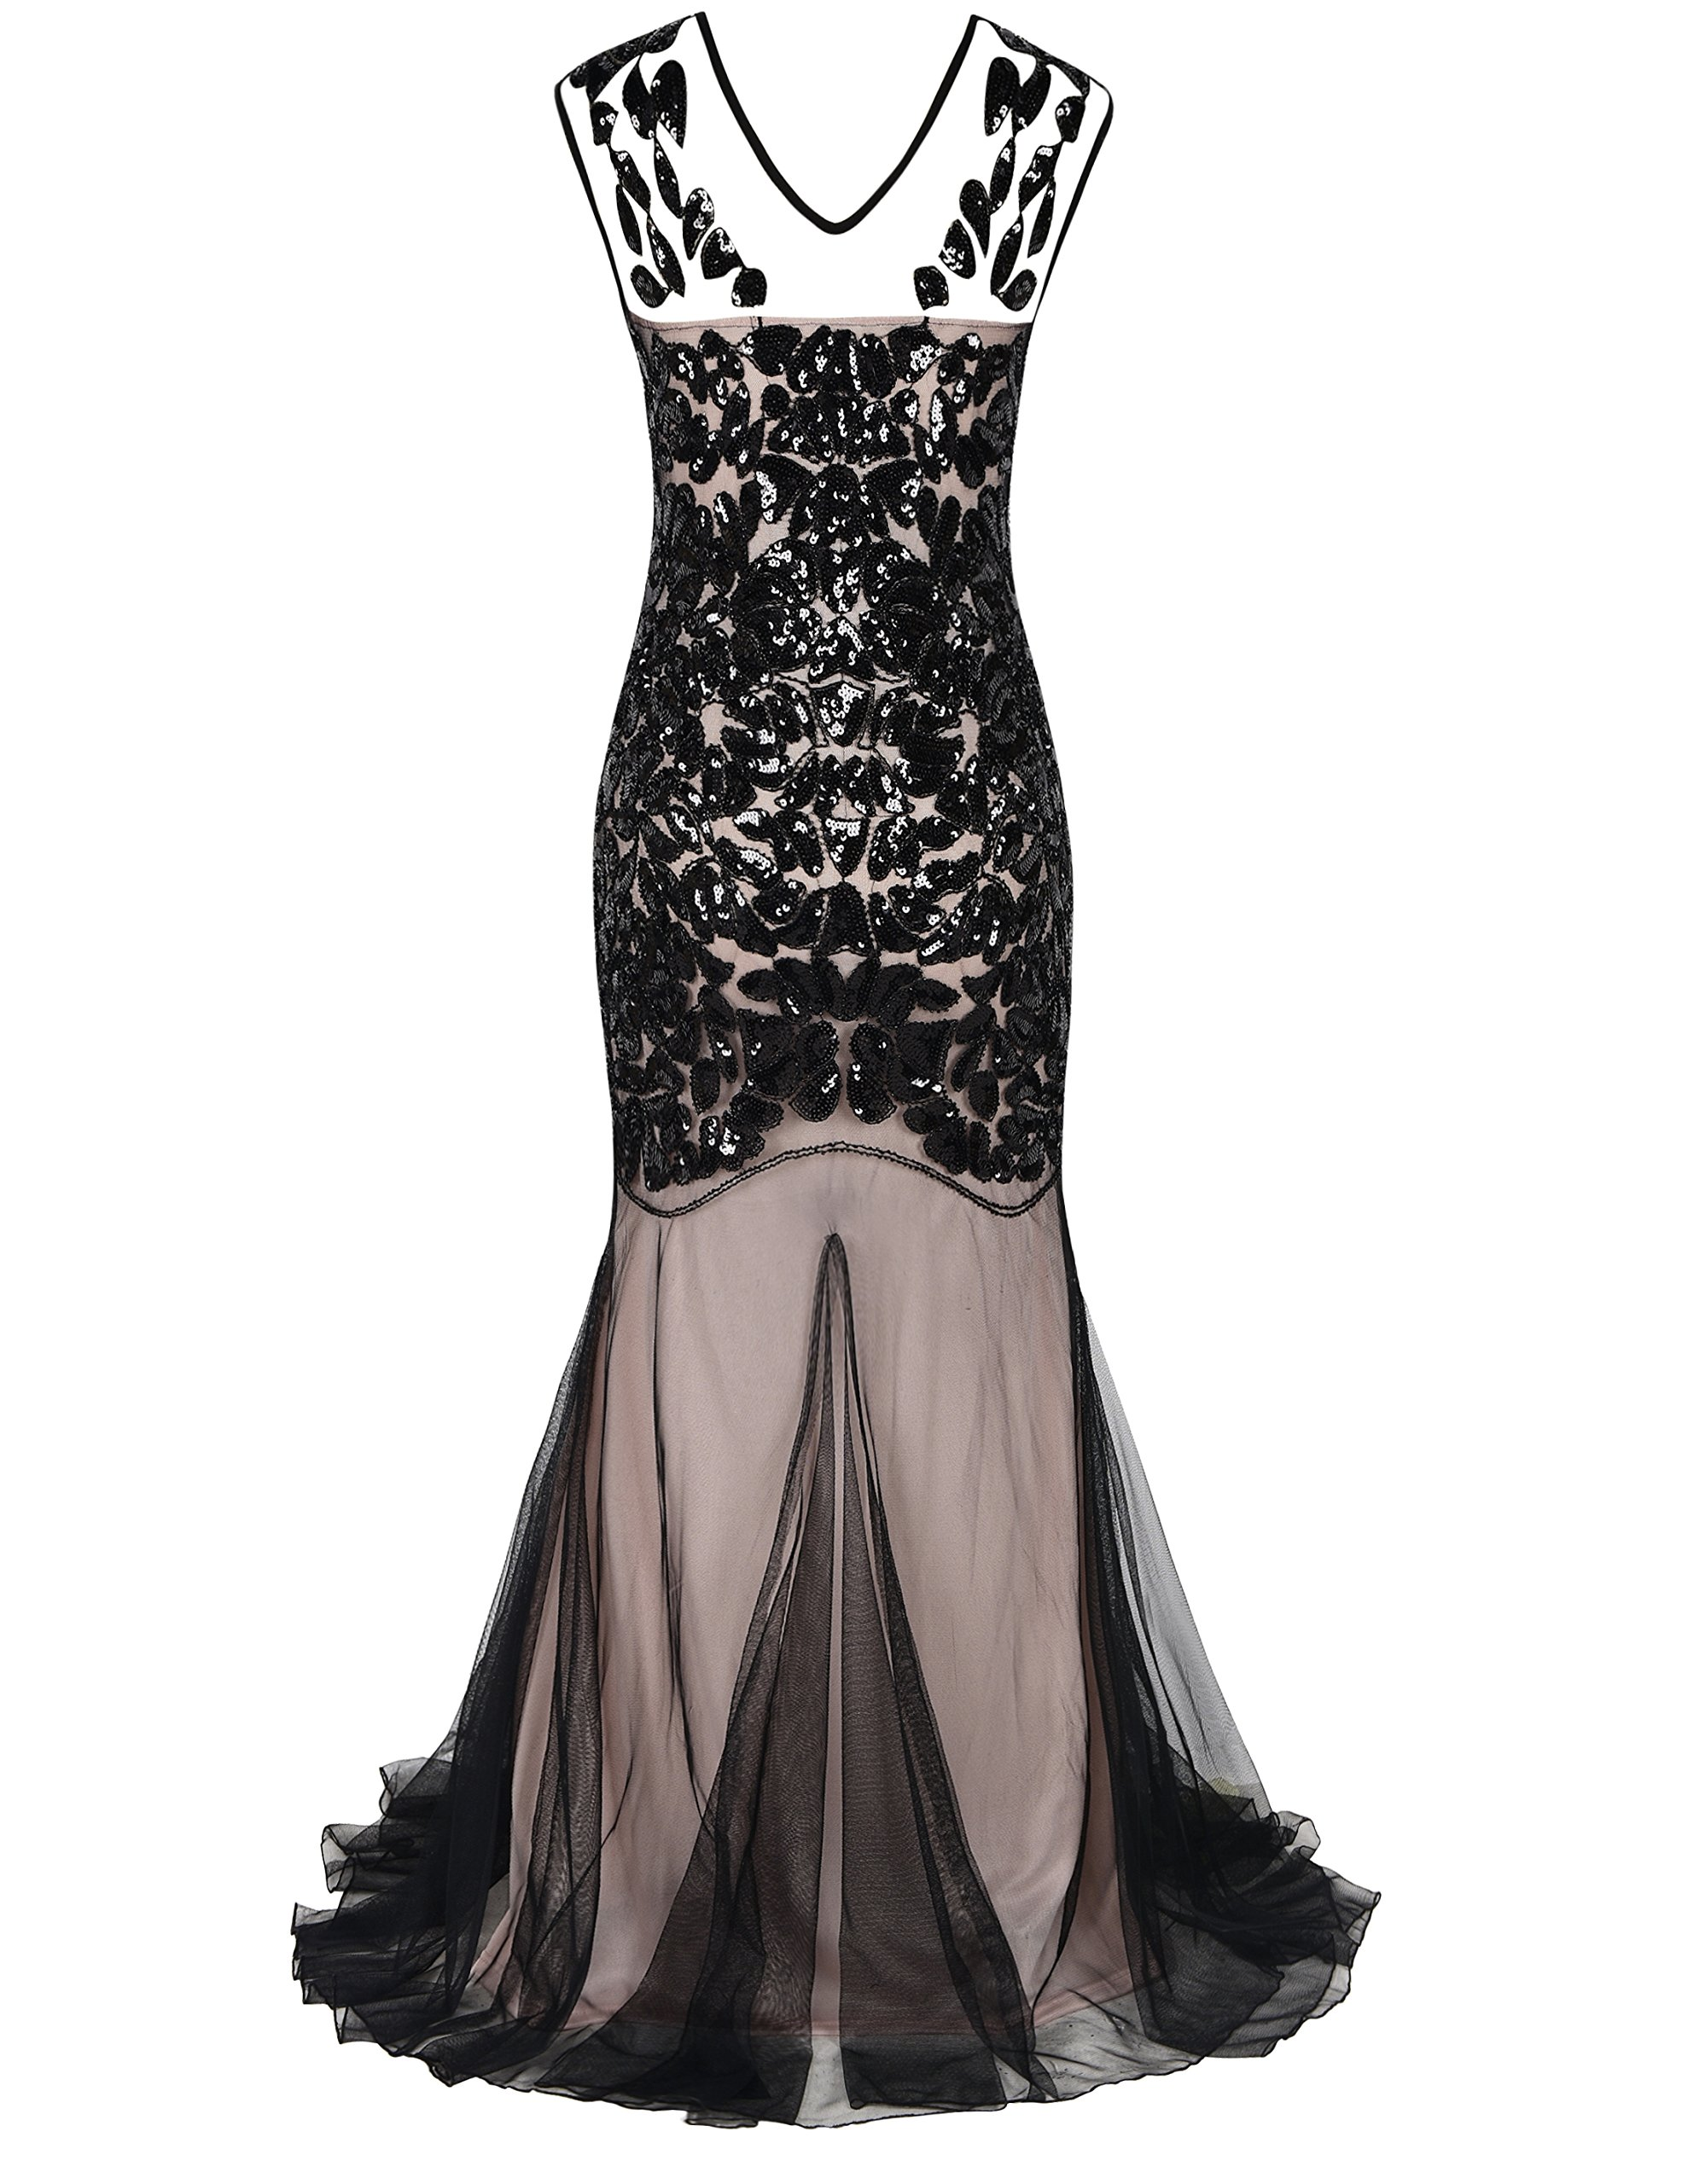 e7dfdbf6d6fa ... Friday/PrettyGuide Women's 1920s Ball Gown Art Deco Flapper Formal  Mermaid Homecoming Dress L Black Beige. ; 